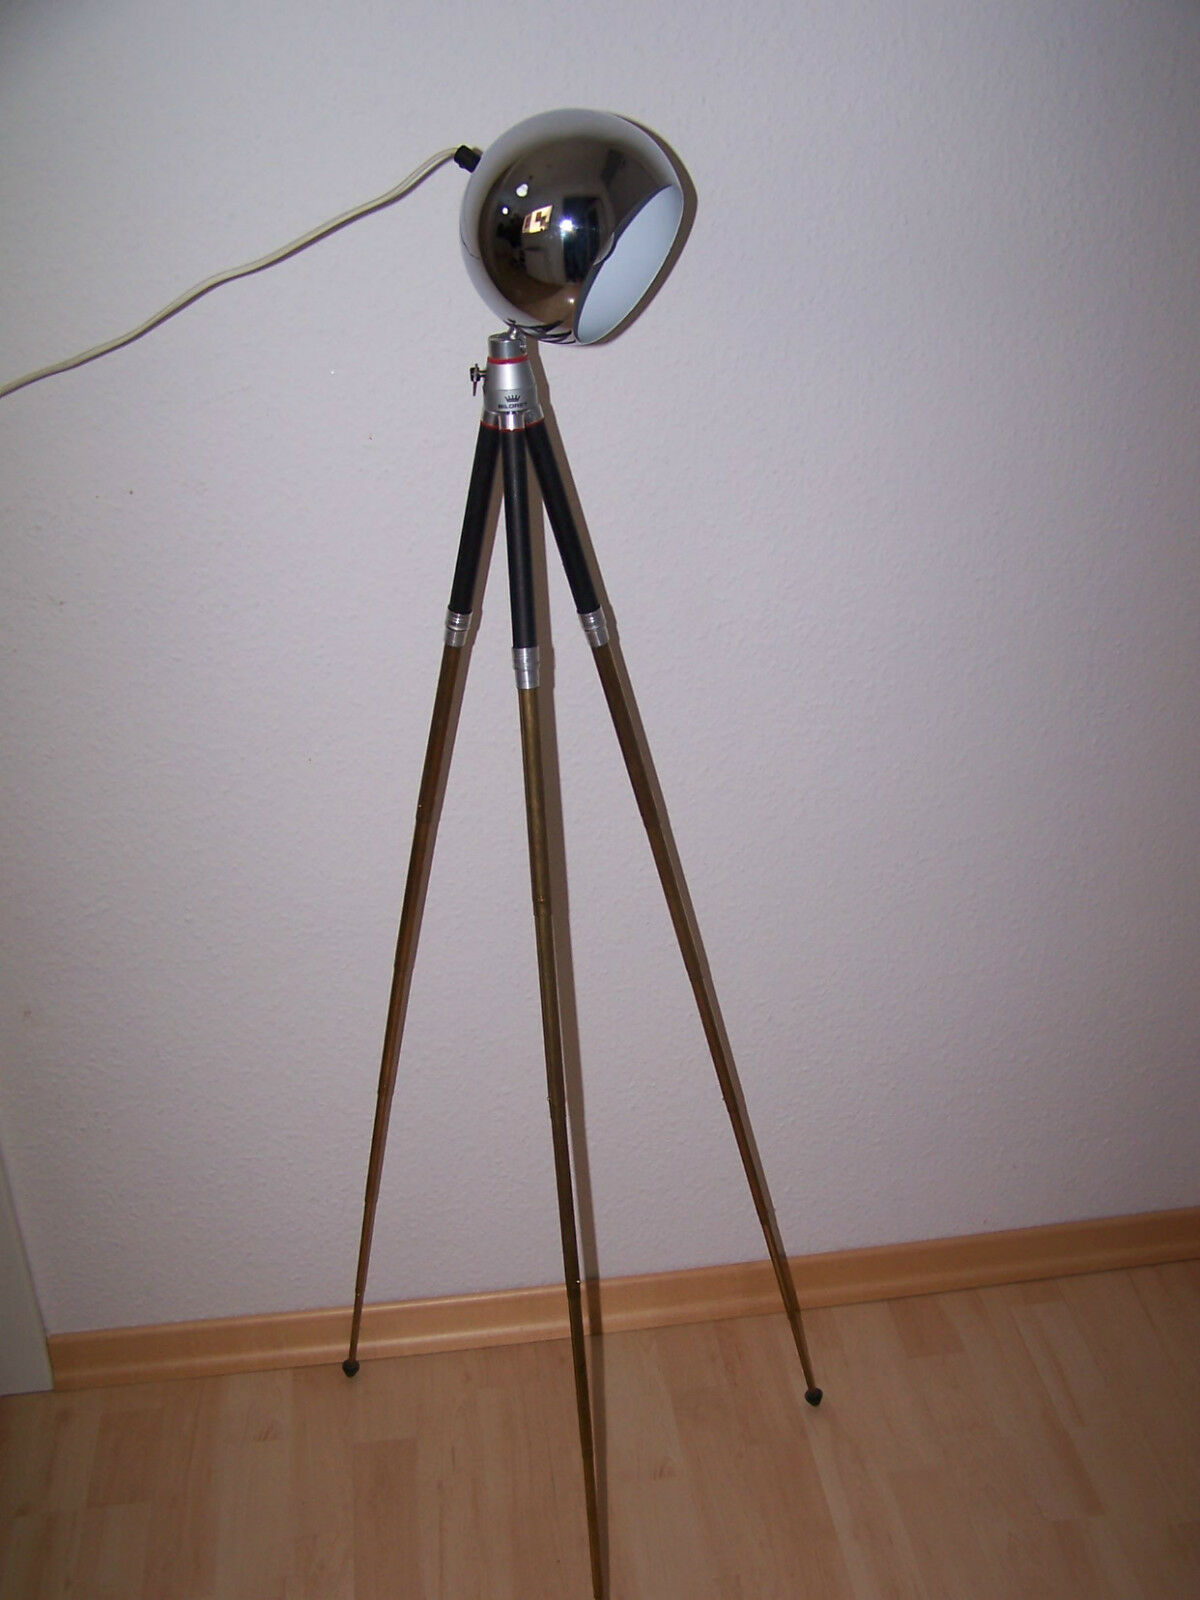 bauhaus stehlampe tripod stativ aus messing art deco. Black Bedroom Furniture Sets. Home Design Ideas